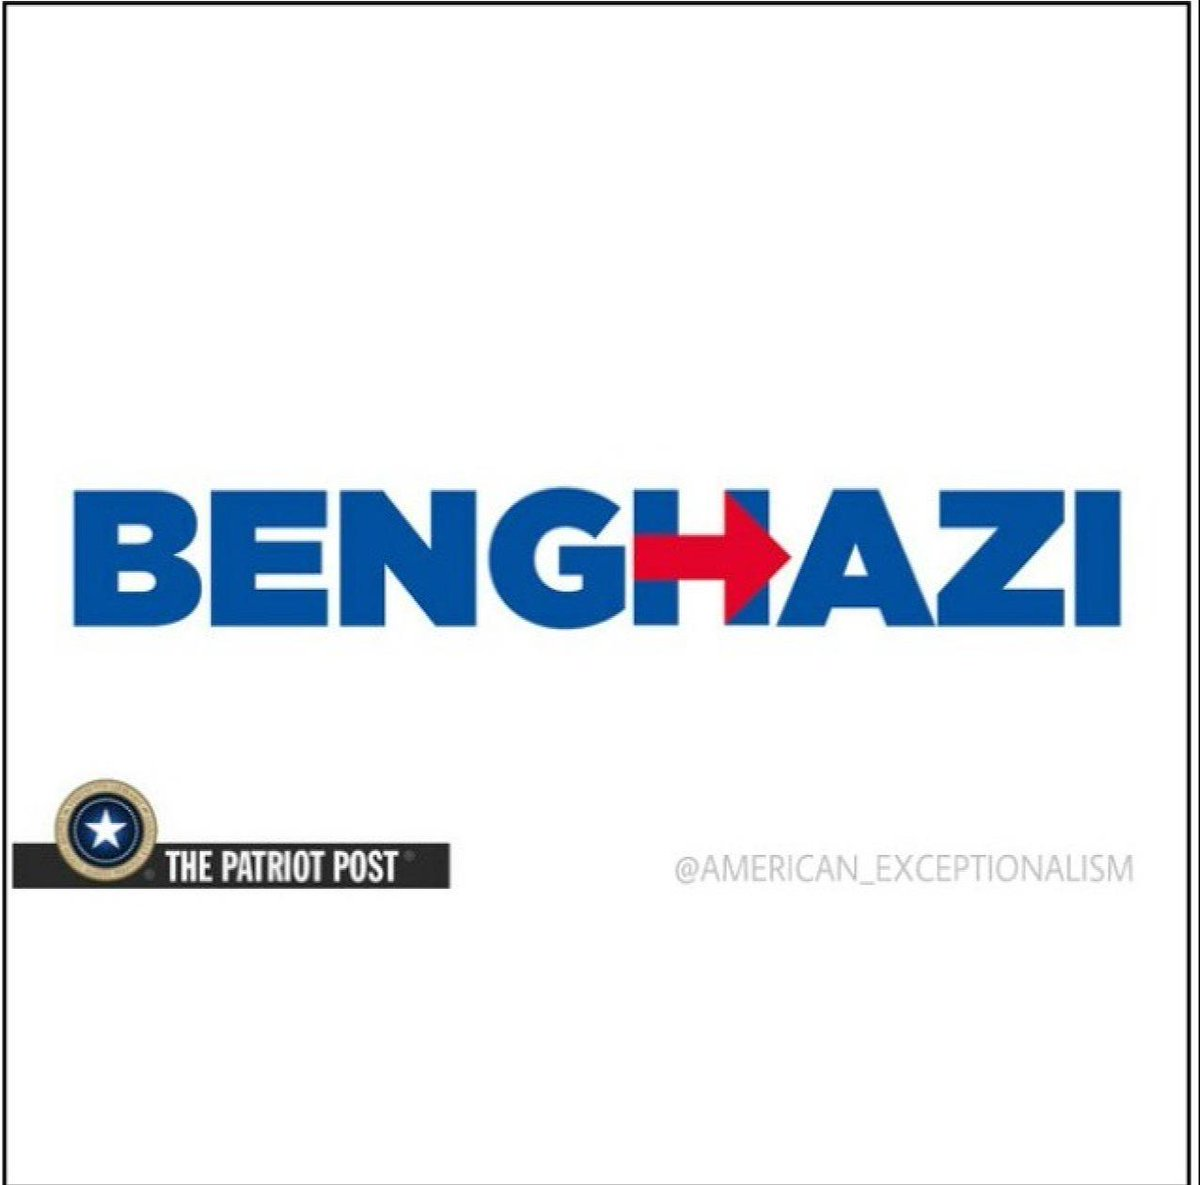 #Benghazi  https://t.co/9JIQjV5Vya